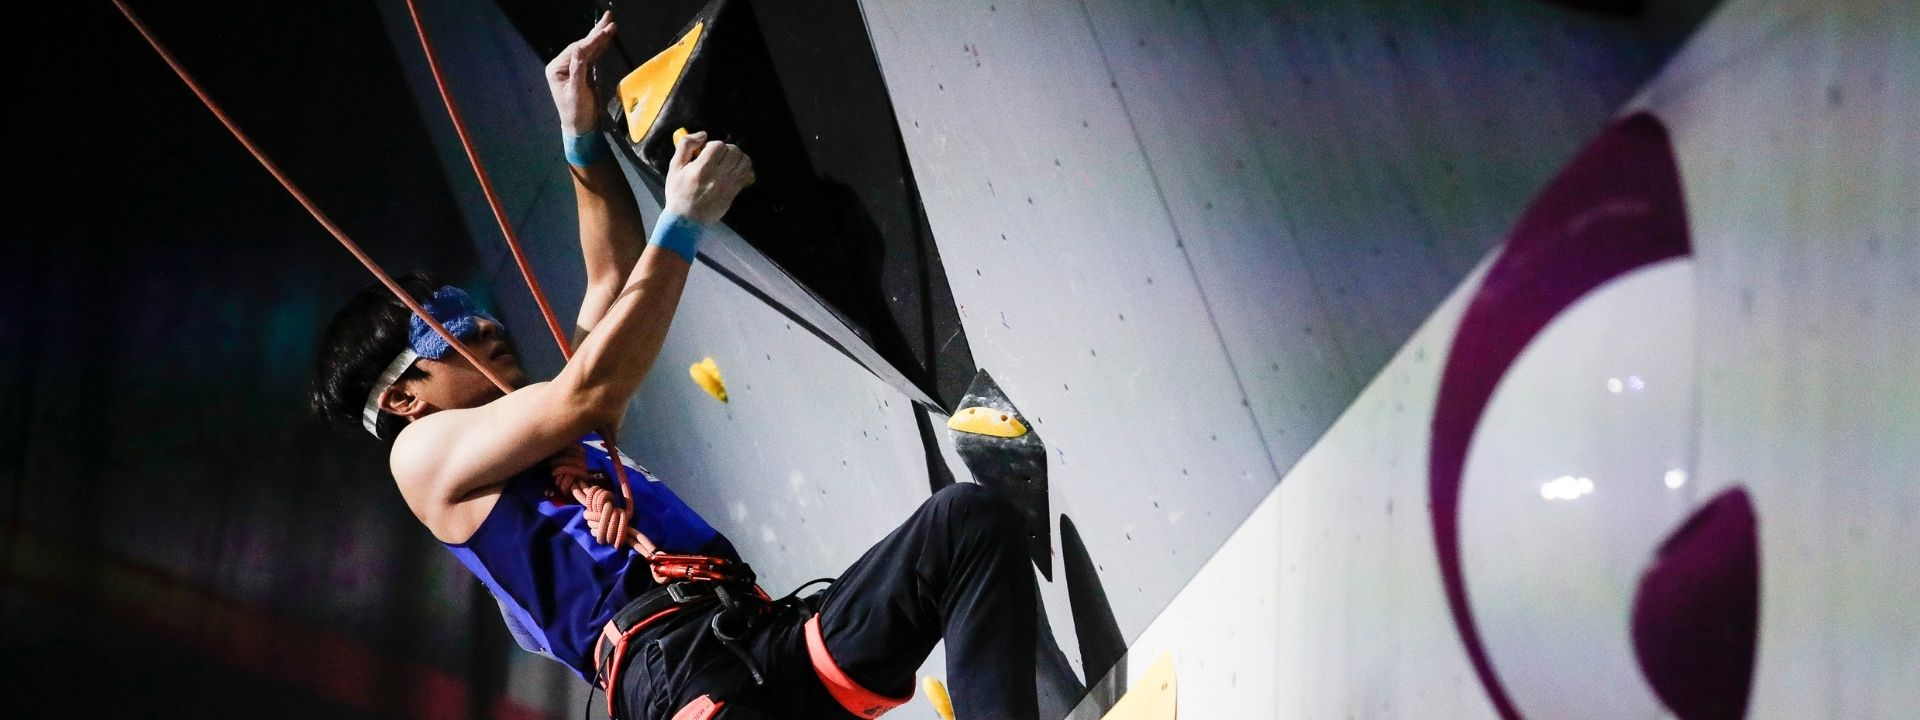 VICTORY FOR AUSTRIA, FRANCE, GREAT BRITAIN, ISRAEL, AND JAPAN IN MEN'S PARACLIMBING FINALS